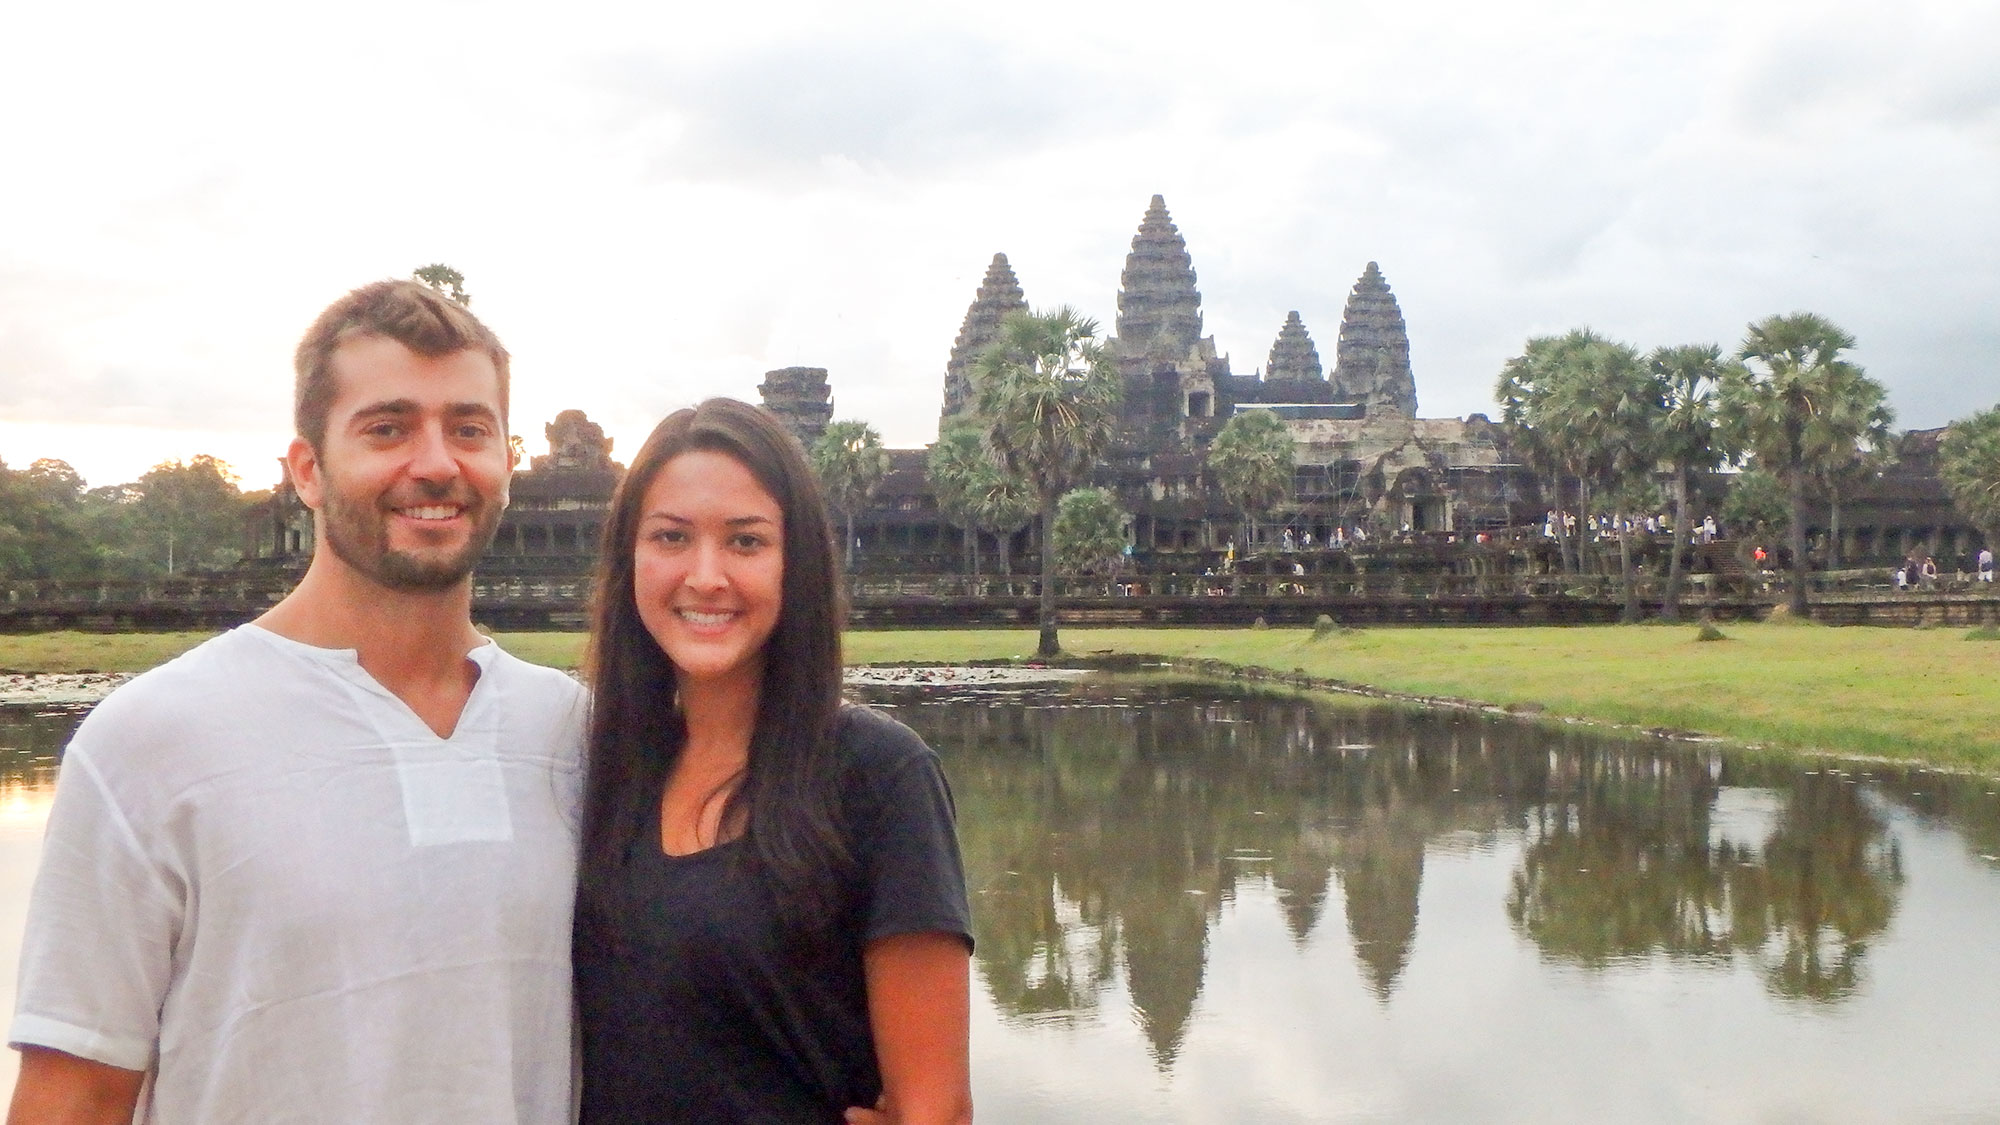 Dan and Meghan in front of Angkor Wat